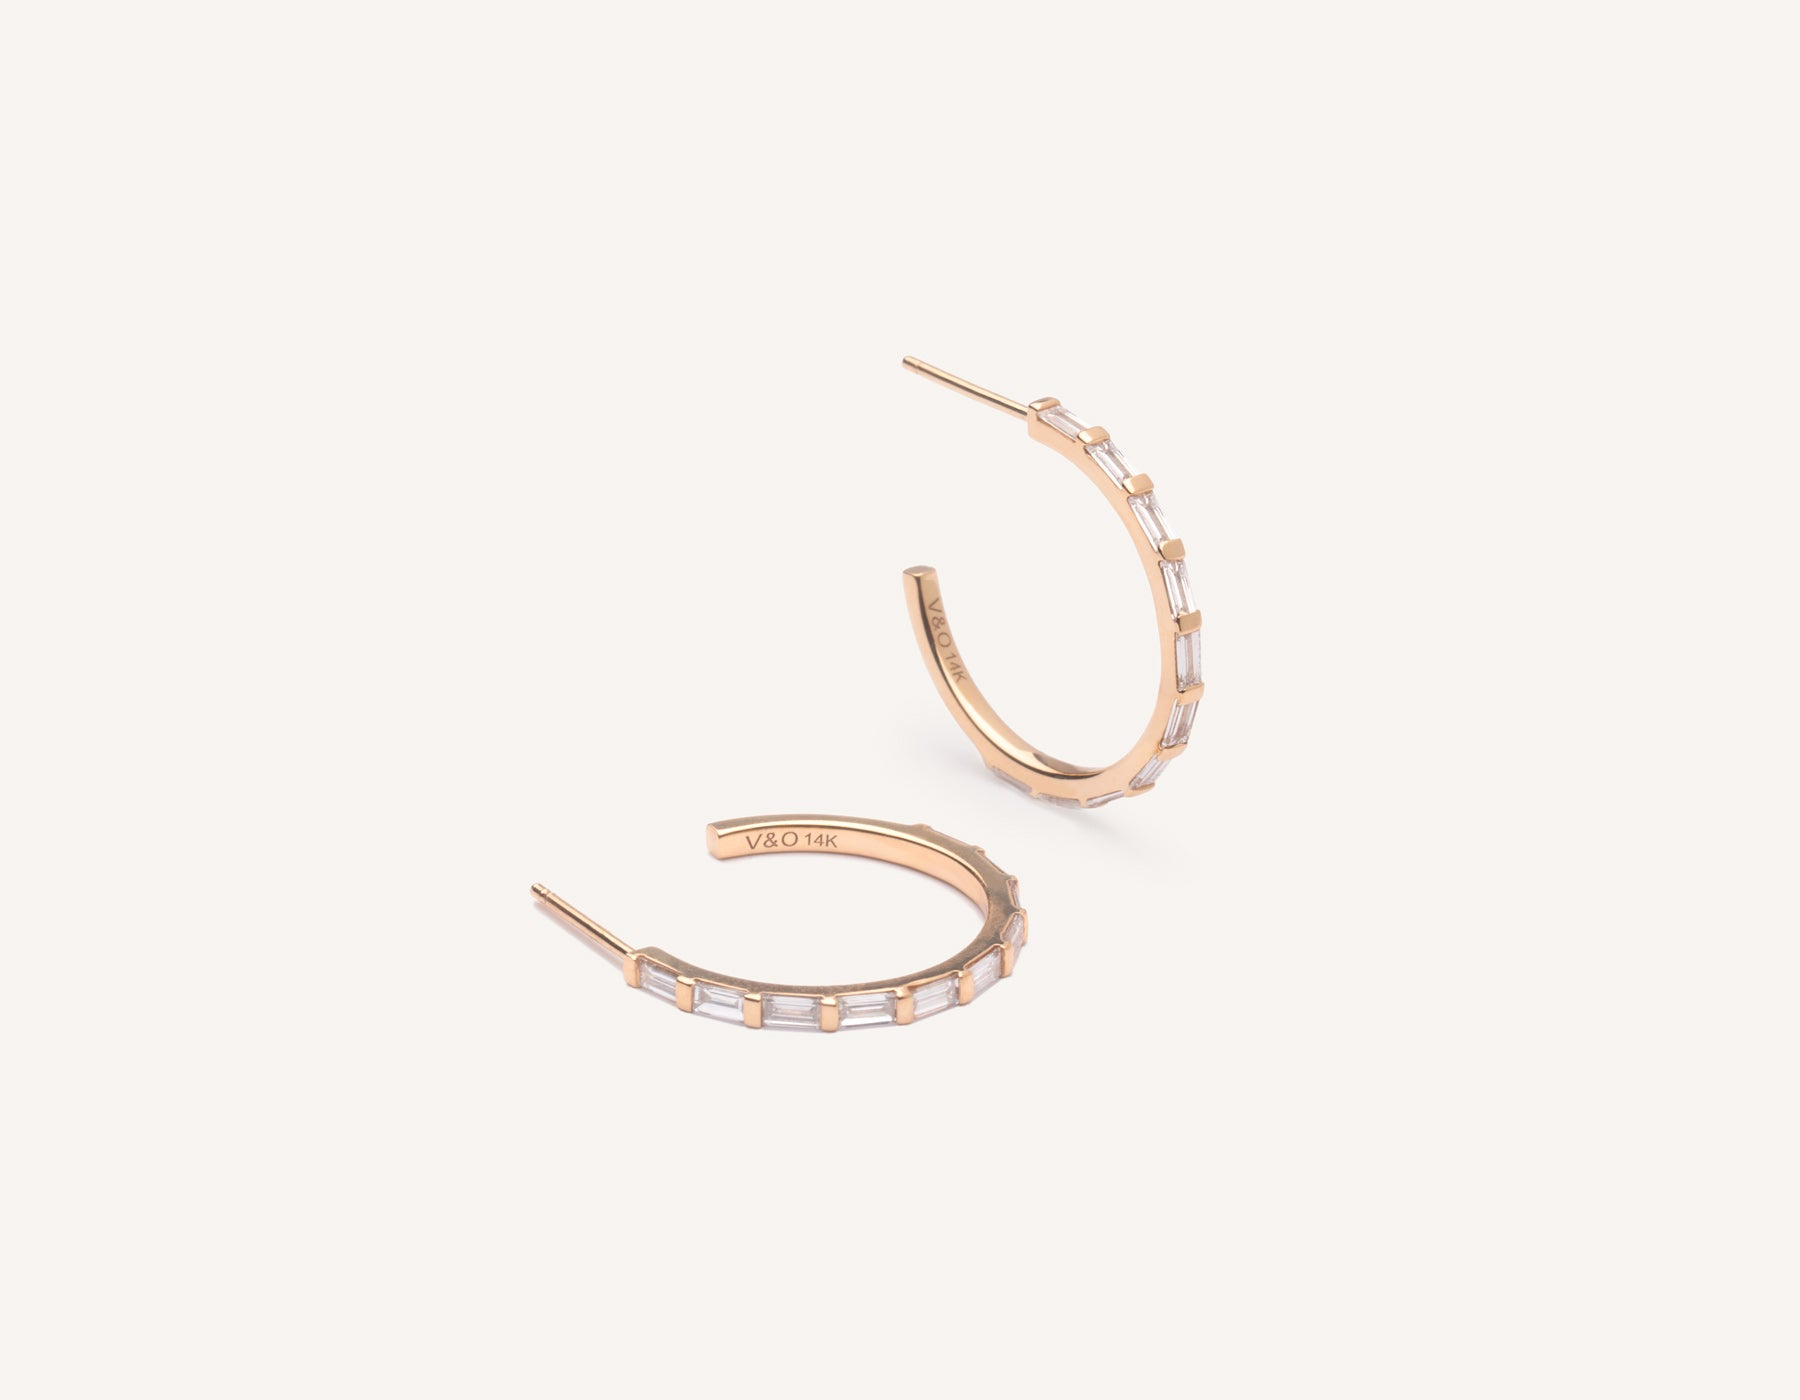 Vrai & Oro modern minimalist 14k solid gold Baguette Diamond Hoop earrings, 14K Rose Gold